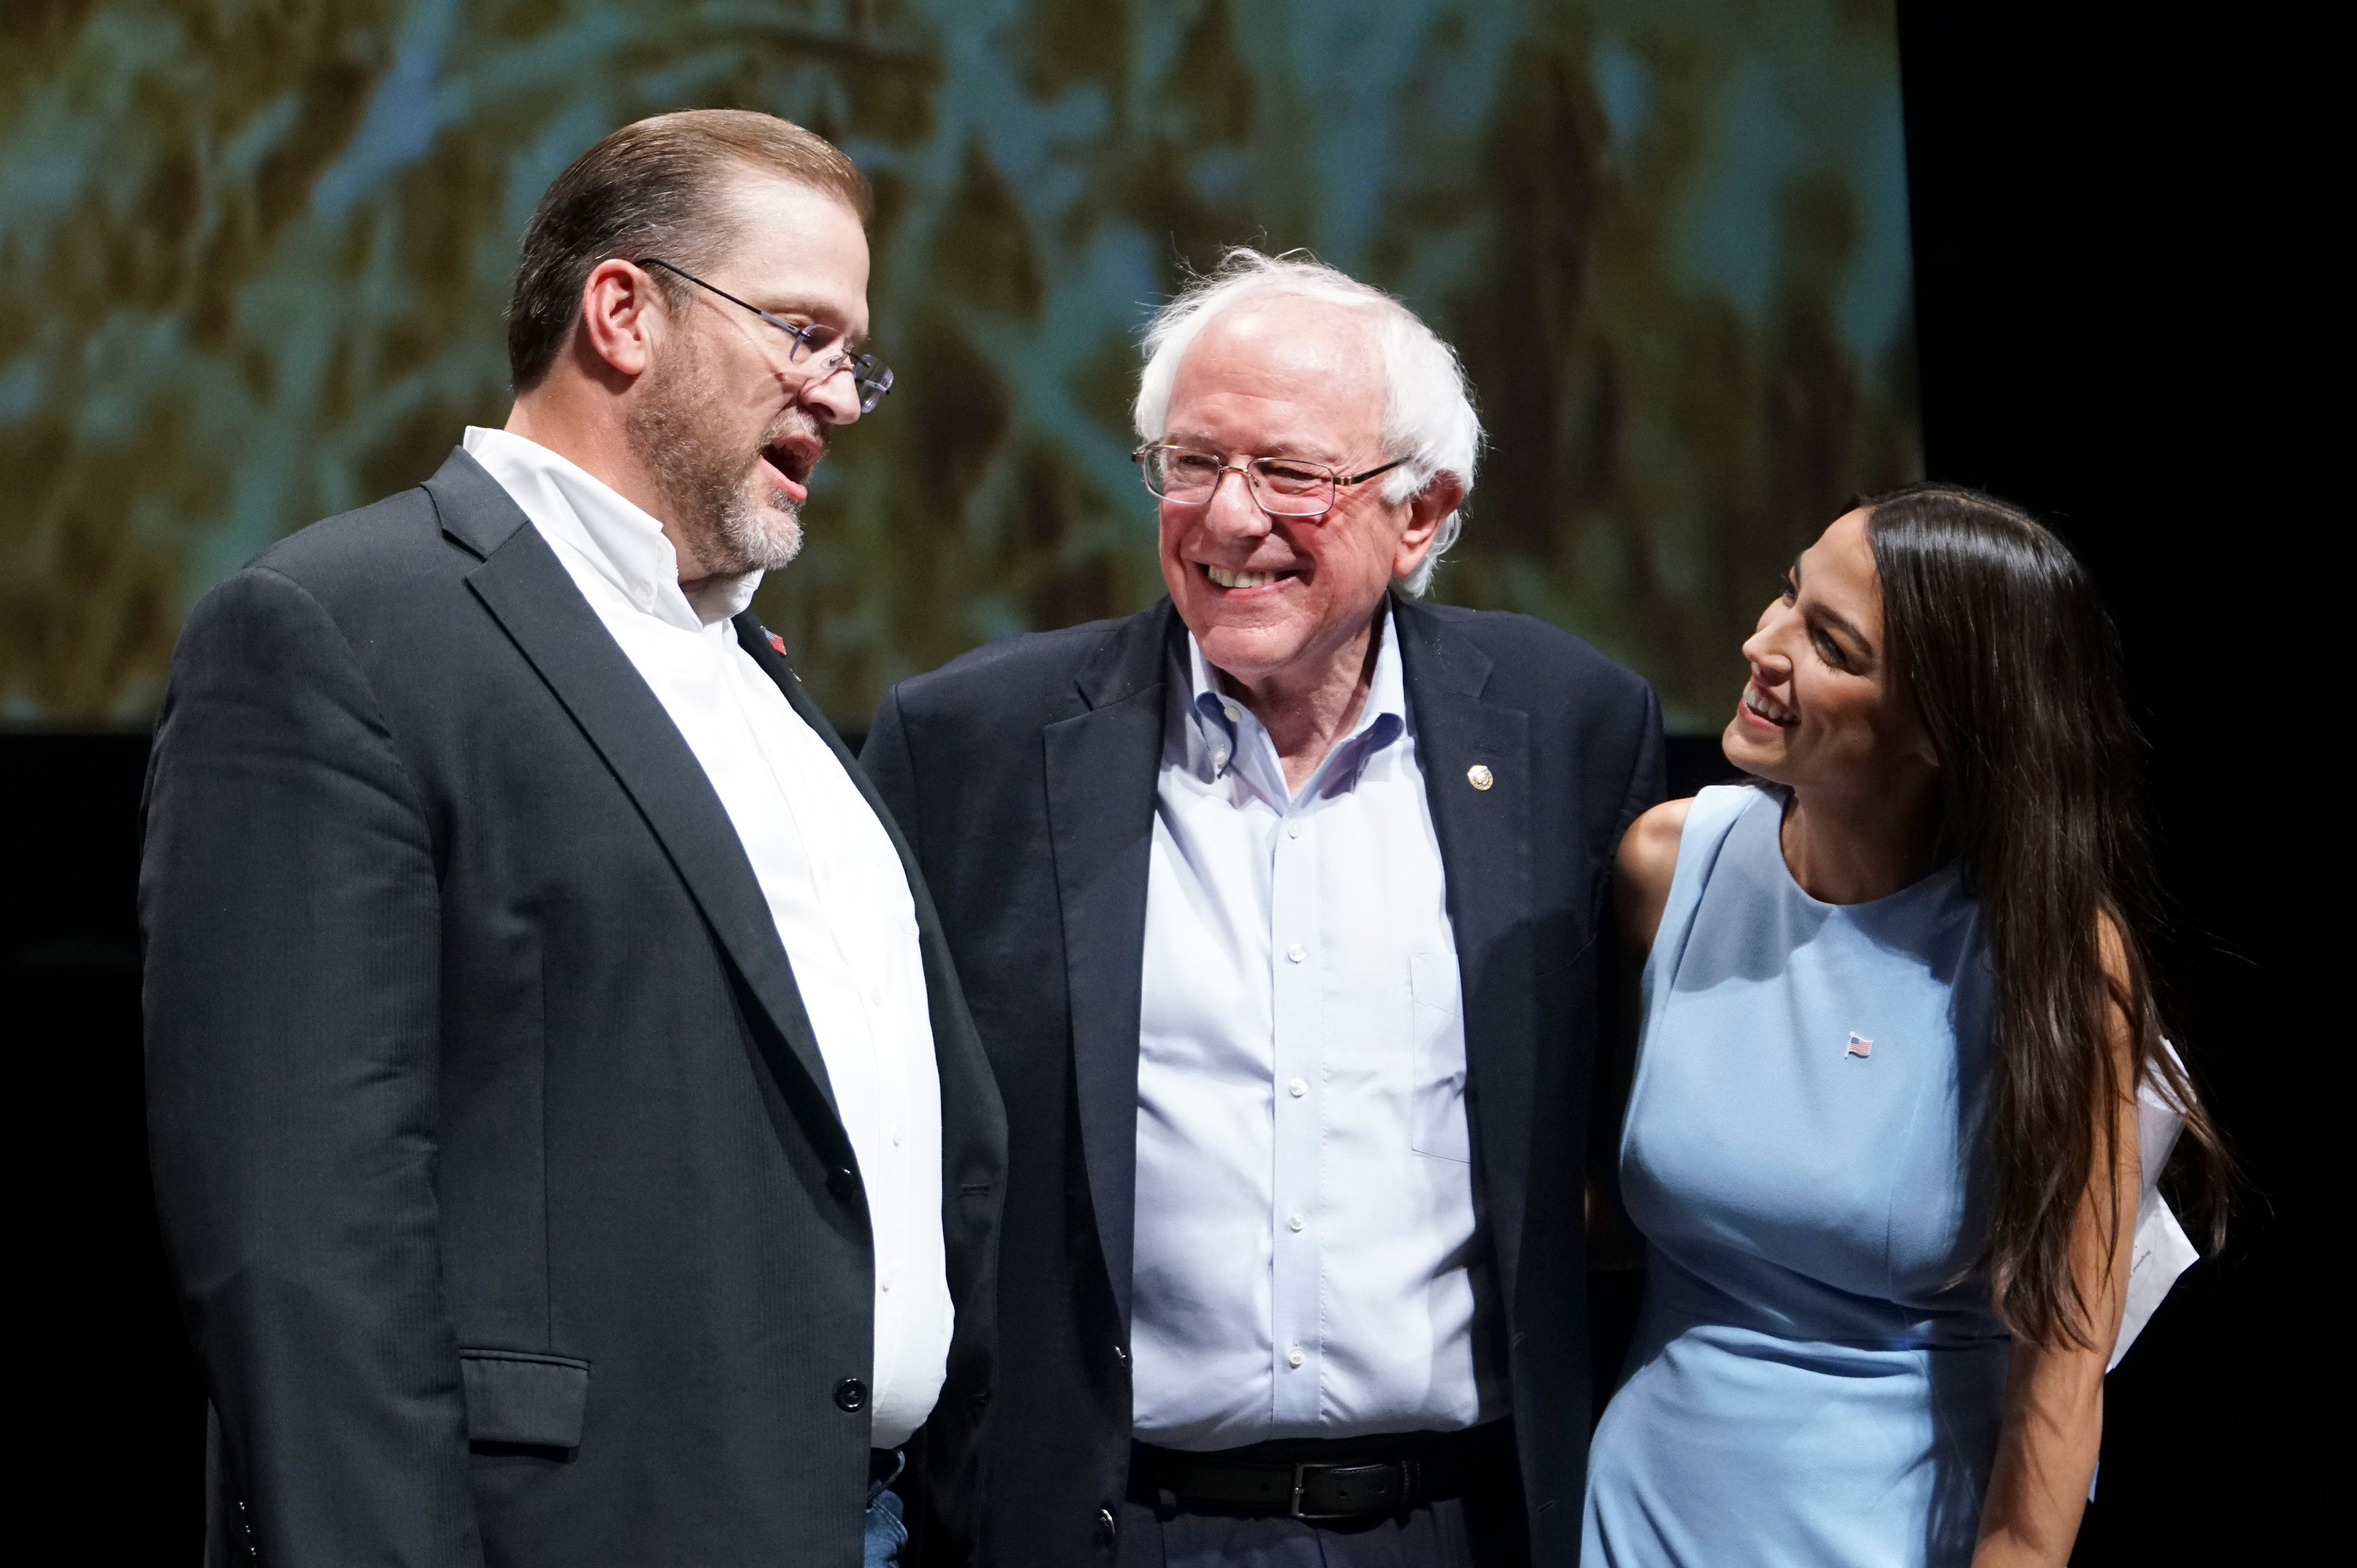 Kansas congressional candidate James Thompson with Sen. Bernie Sanders (I-Vt.) and Alexandria Ocasio-Cortez, a Democratic con